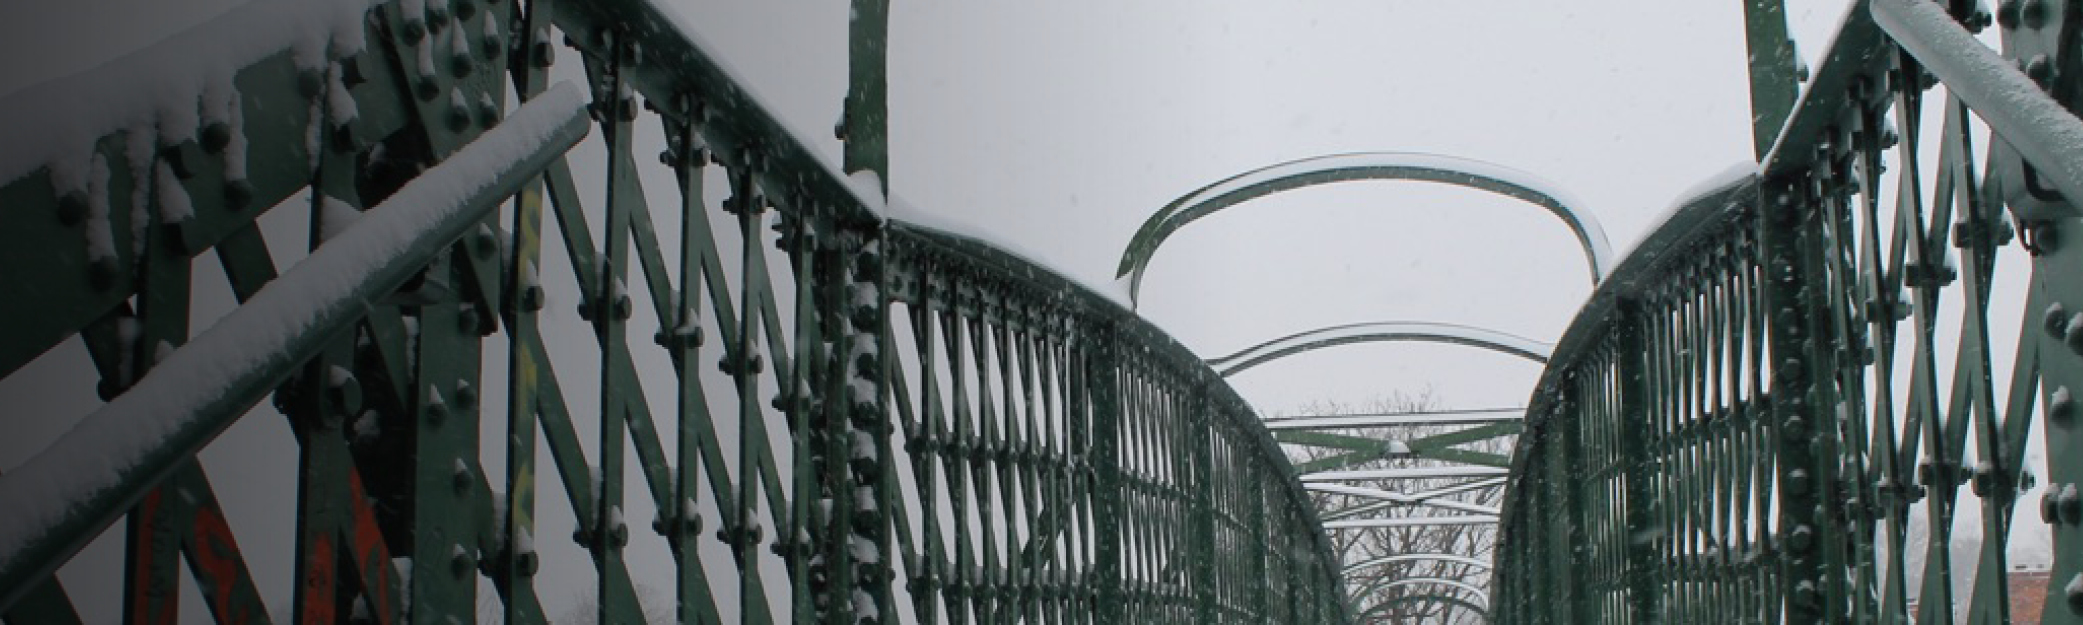 Bridge over the railway to The Dog pub in the snow